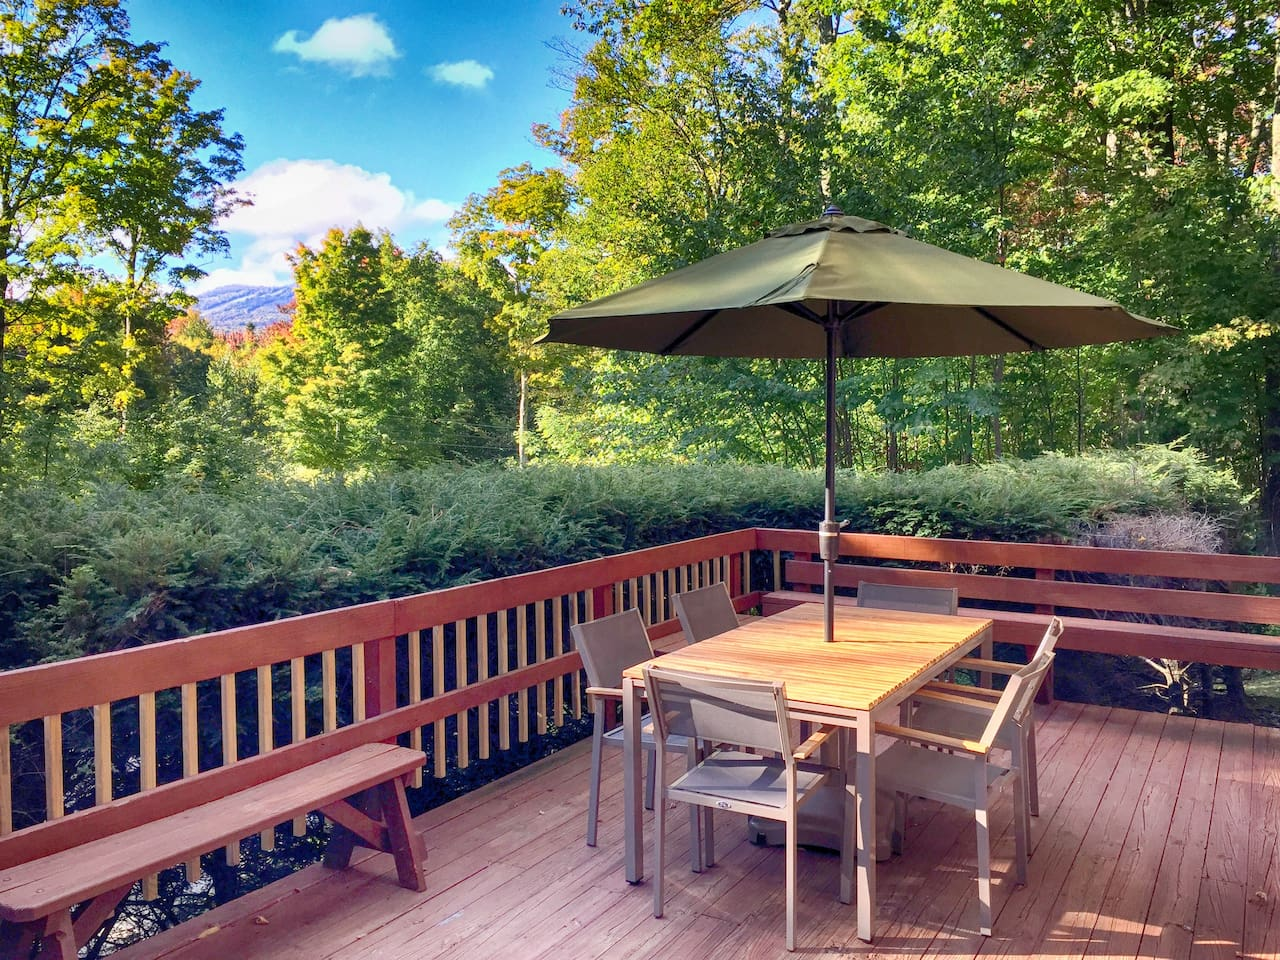 Front deck with table, chairs, umbrella and great views.